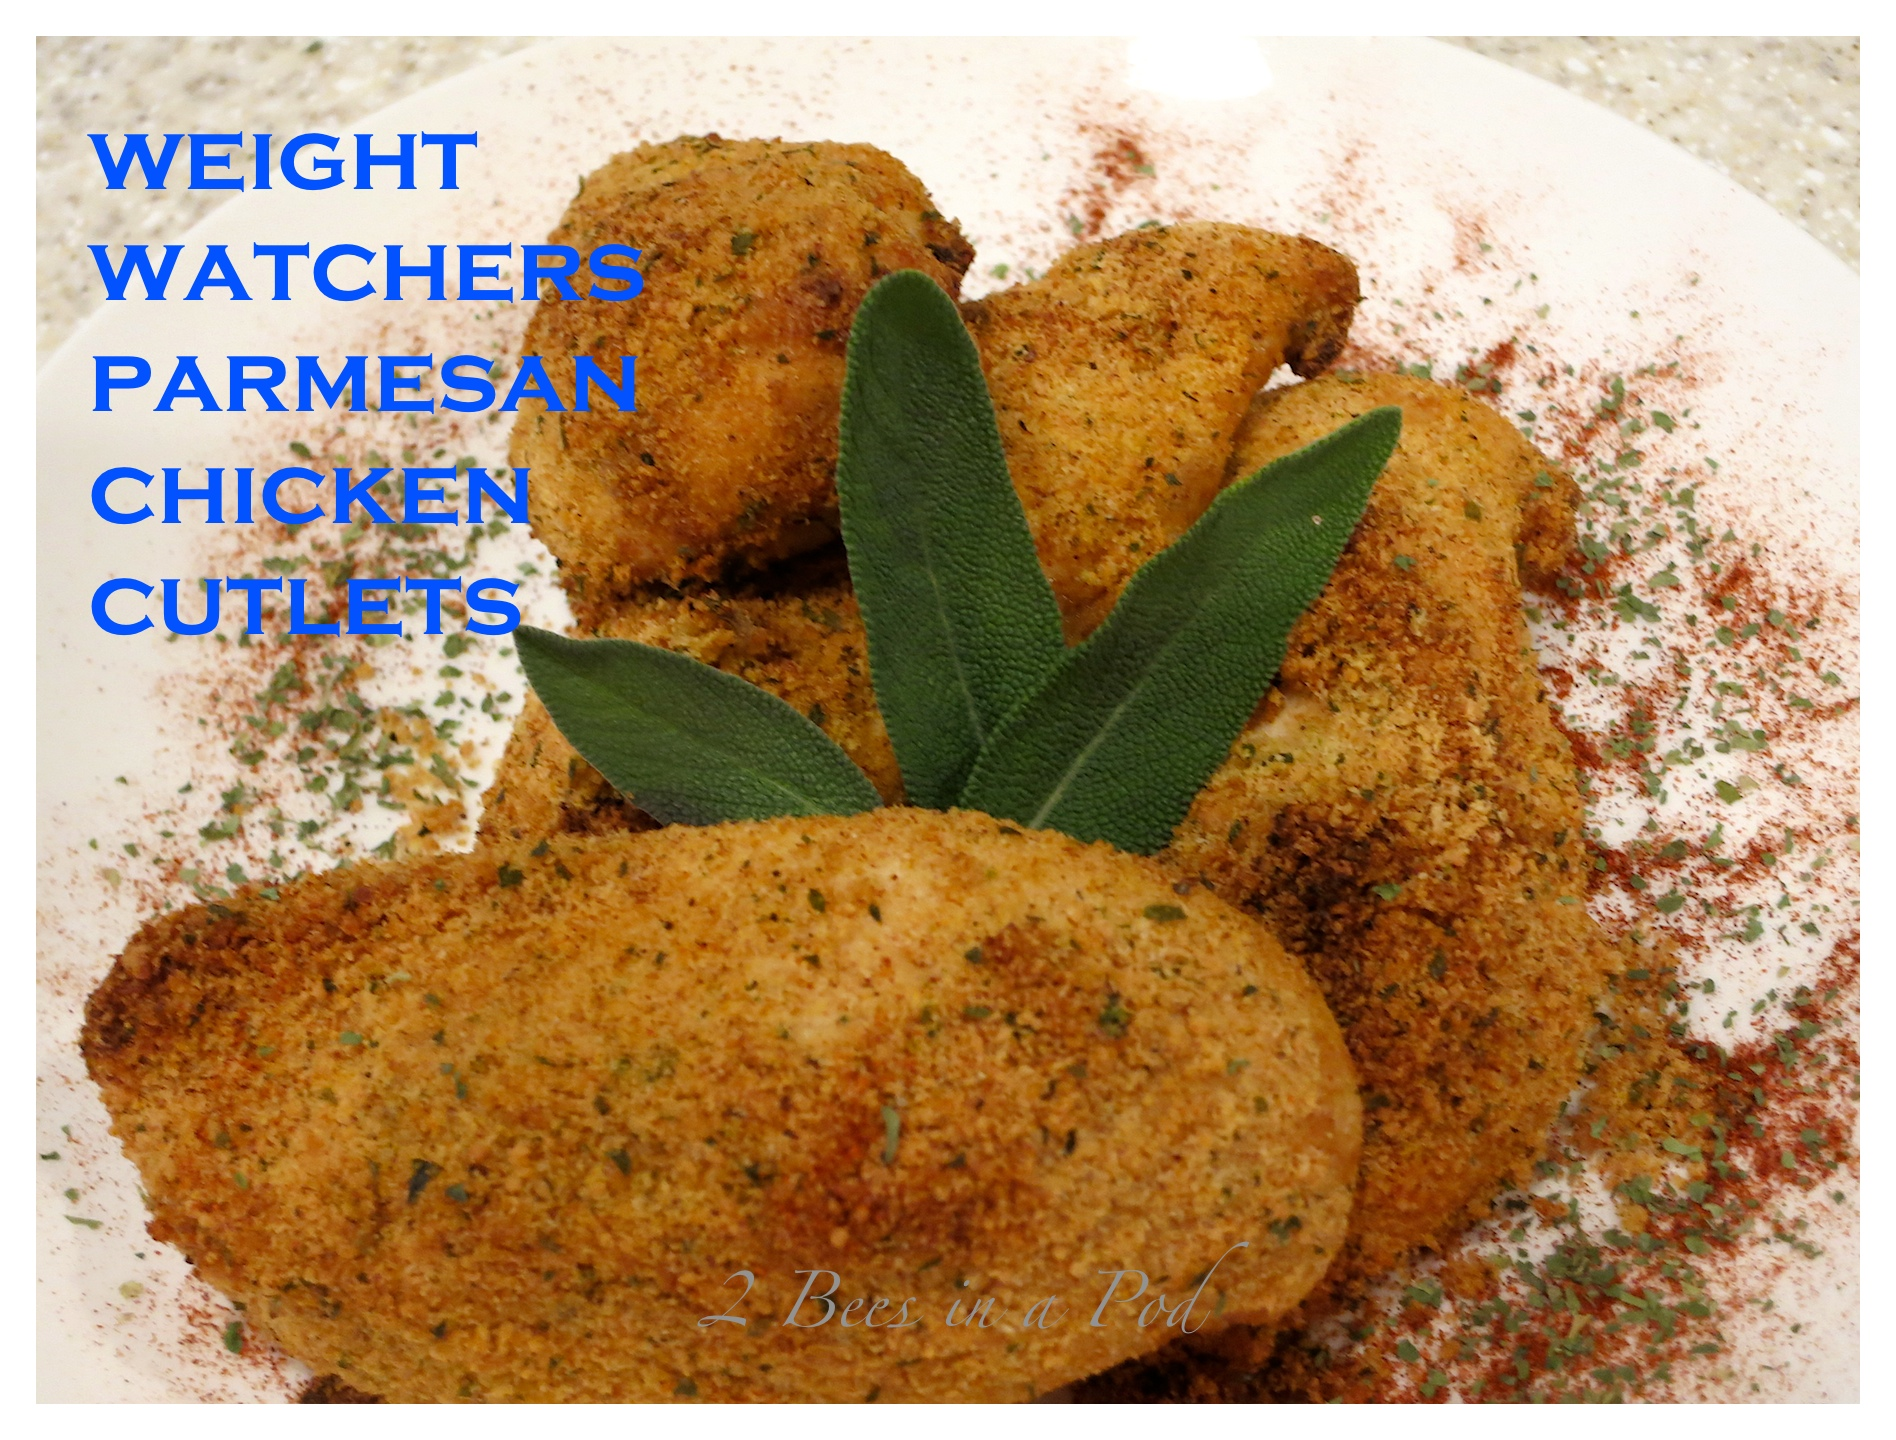 Another delicious Weight Watchers recipe...Parmesan Chicken Cutlets. Super easy and delicious - a wonderful dinner. I never feel like I eat diet food :)